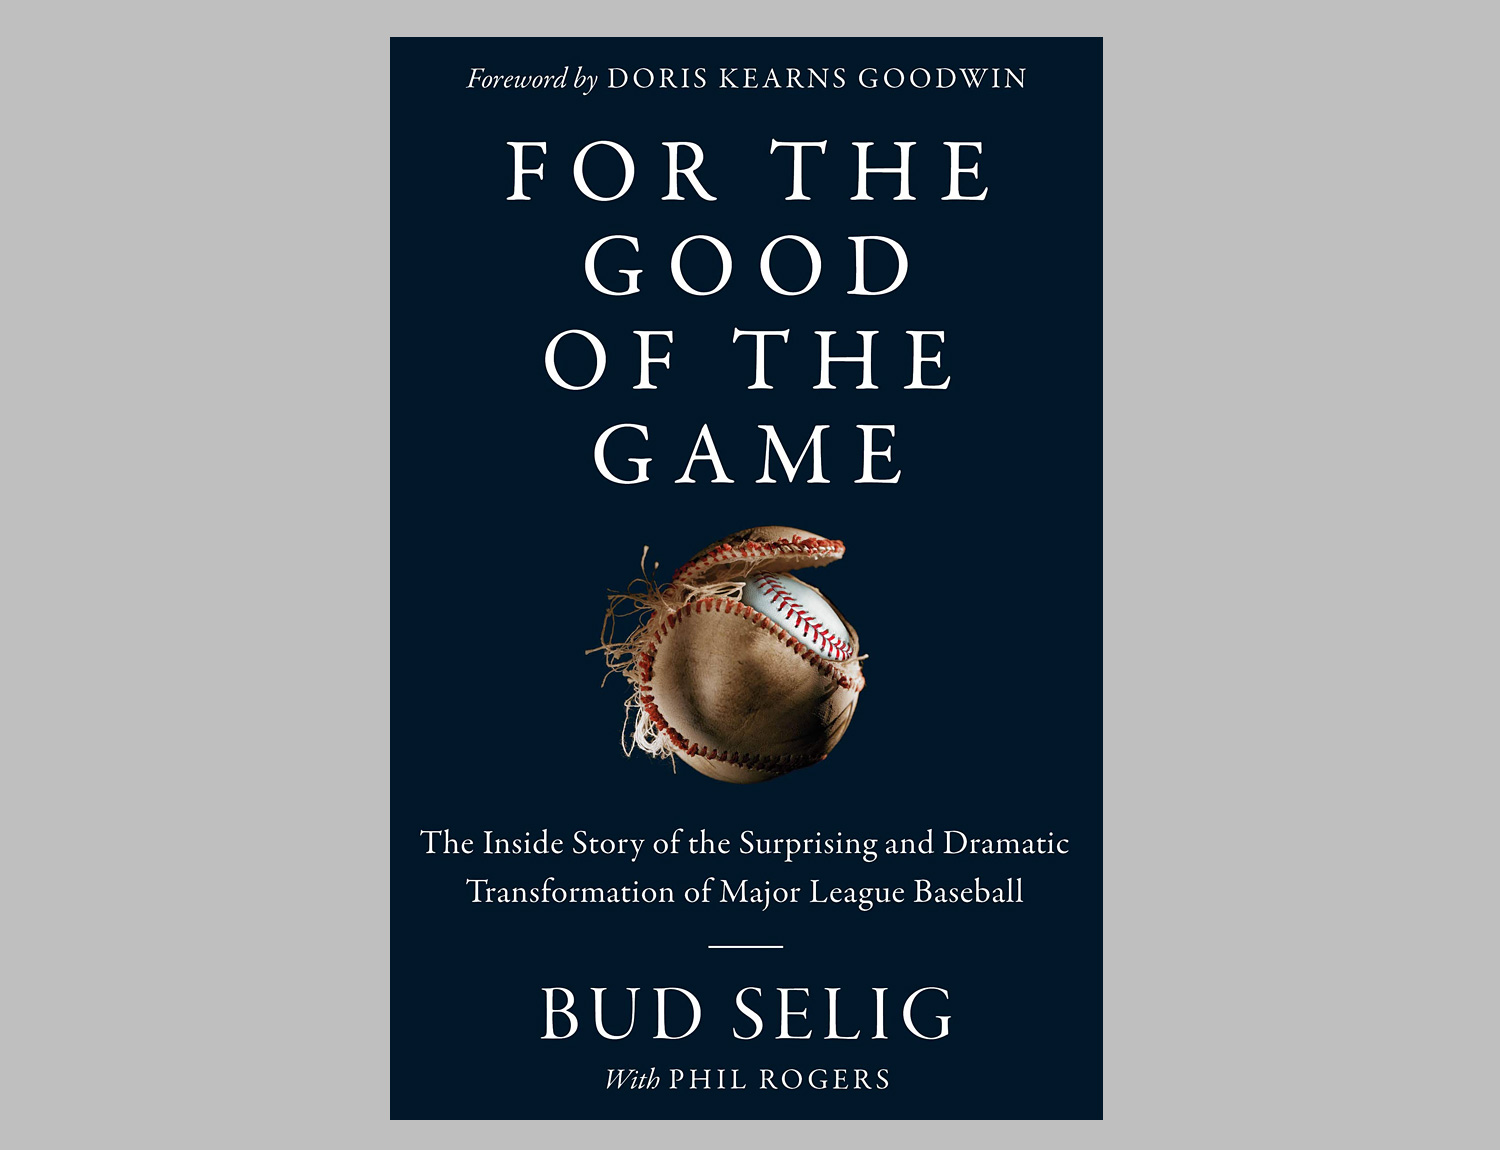 For the Good of the Game: The Inside Story of the Surprising and Dramatic Transformation of MLB at werd.com